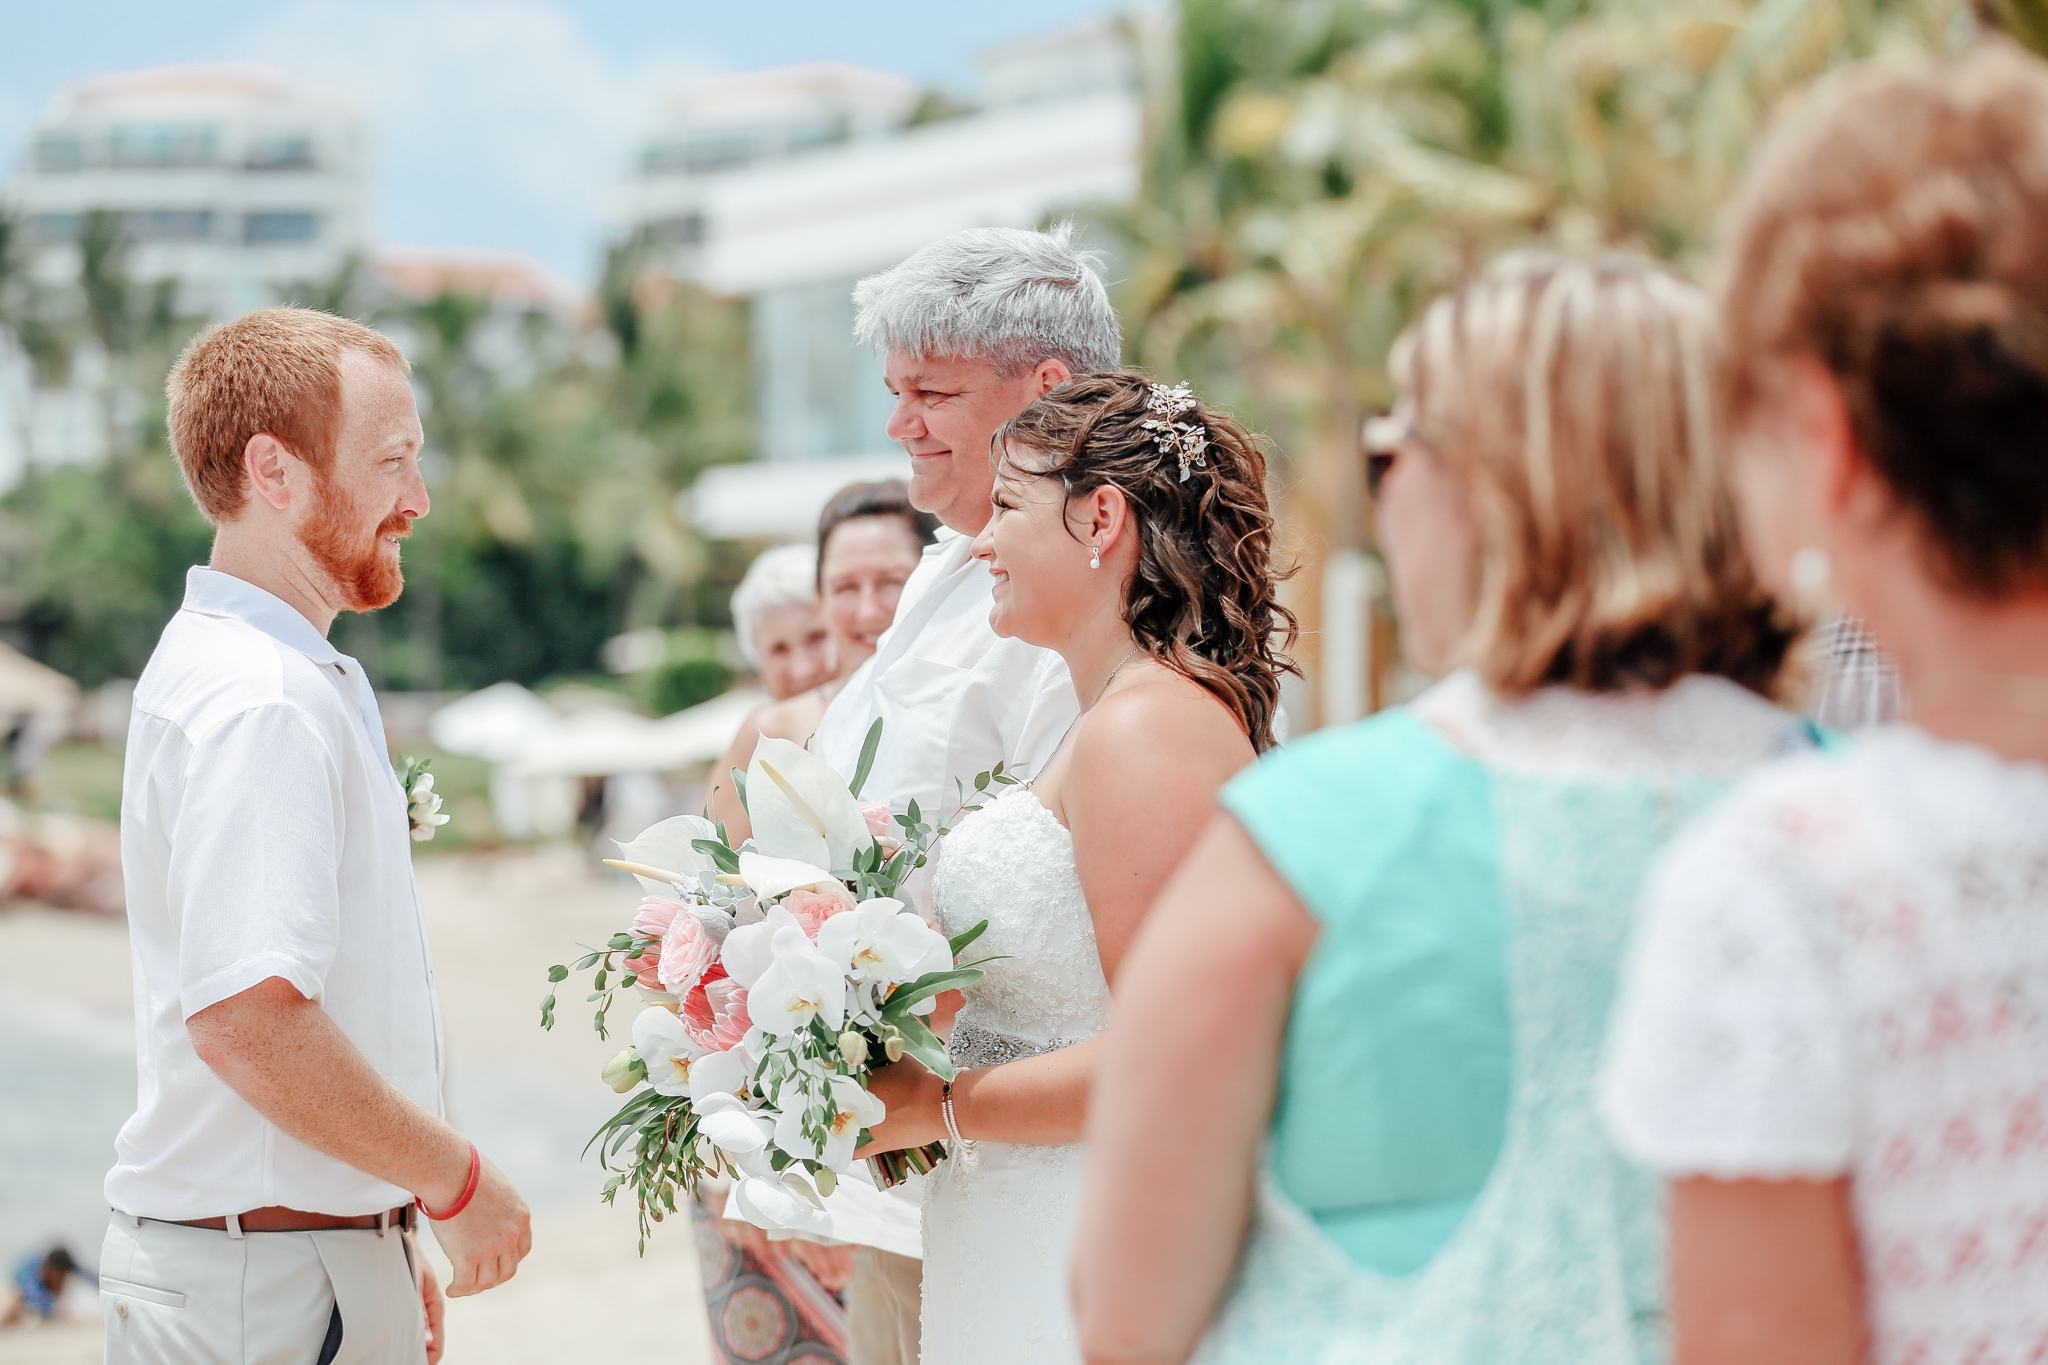 Tiffany and Ryan - Puerto Vallarta Wedding Photographer - 49.jpg